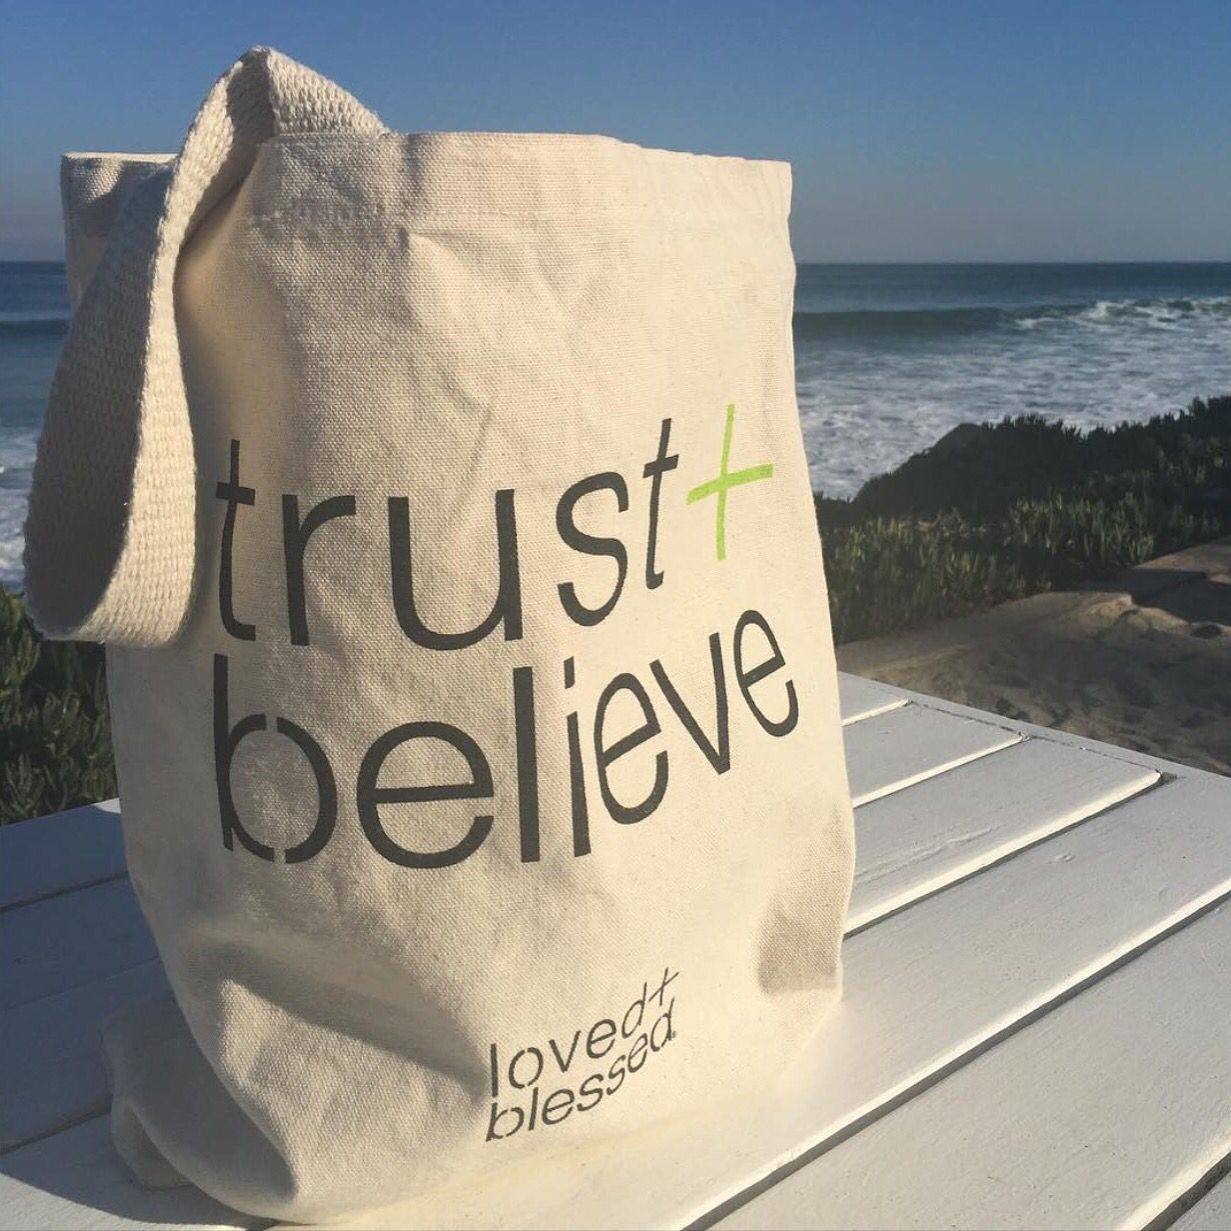 This beautiful picture of the trust tote was sent to us by a lovedandblessed lady. What a view!  The ocean is always an amazing reminder of God's power. #trustandbelieve